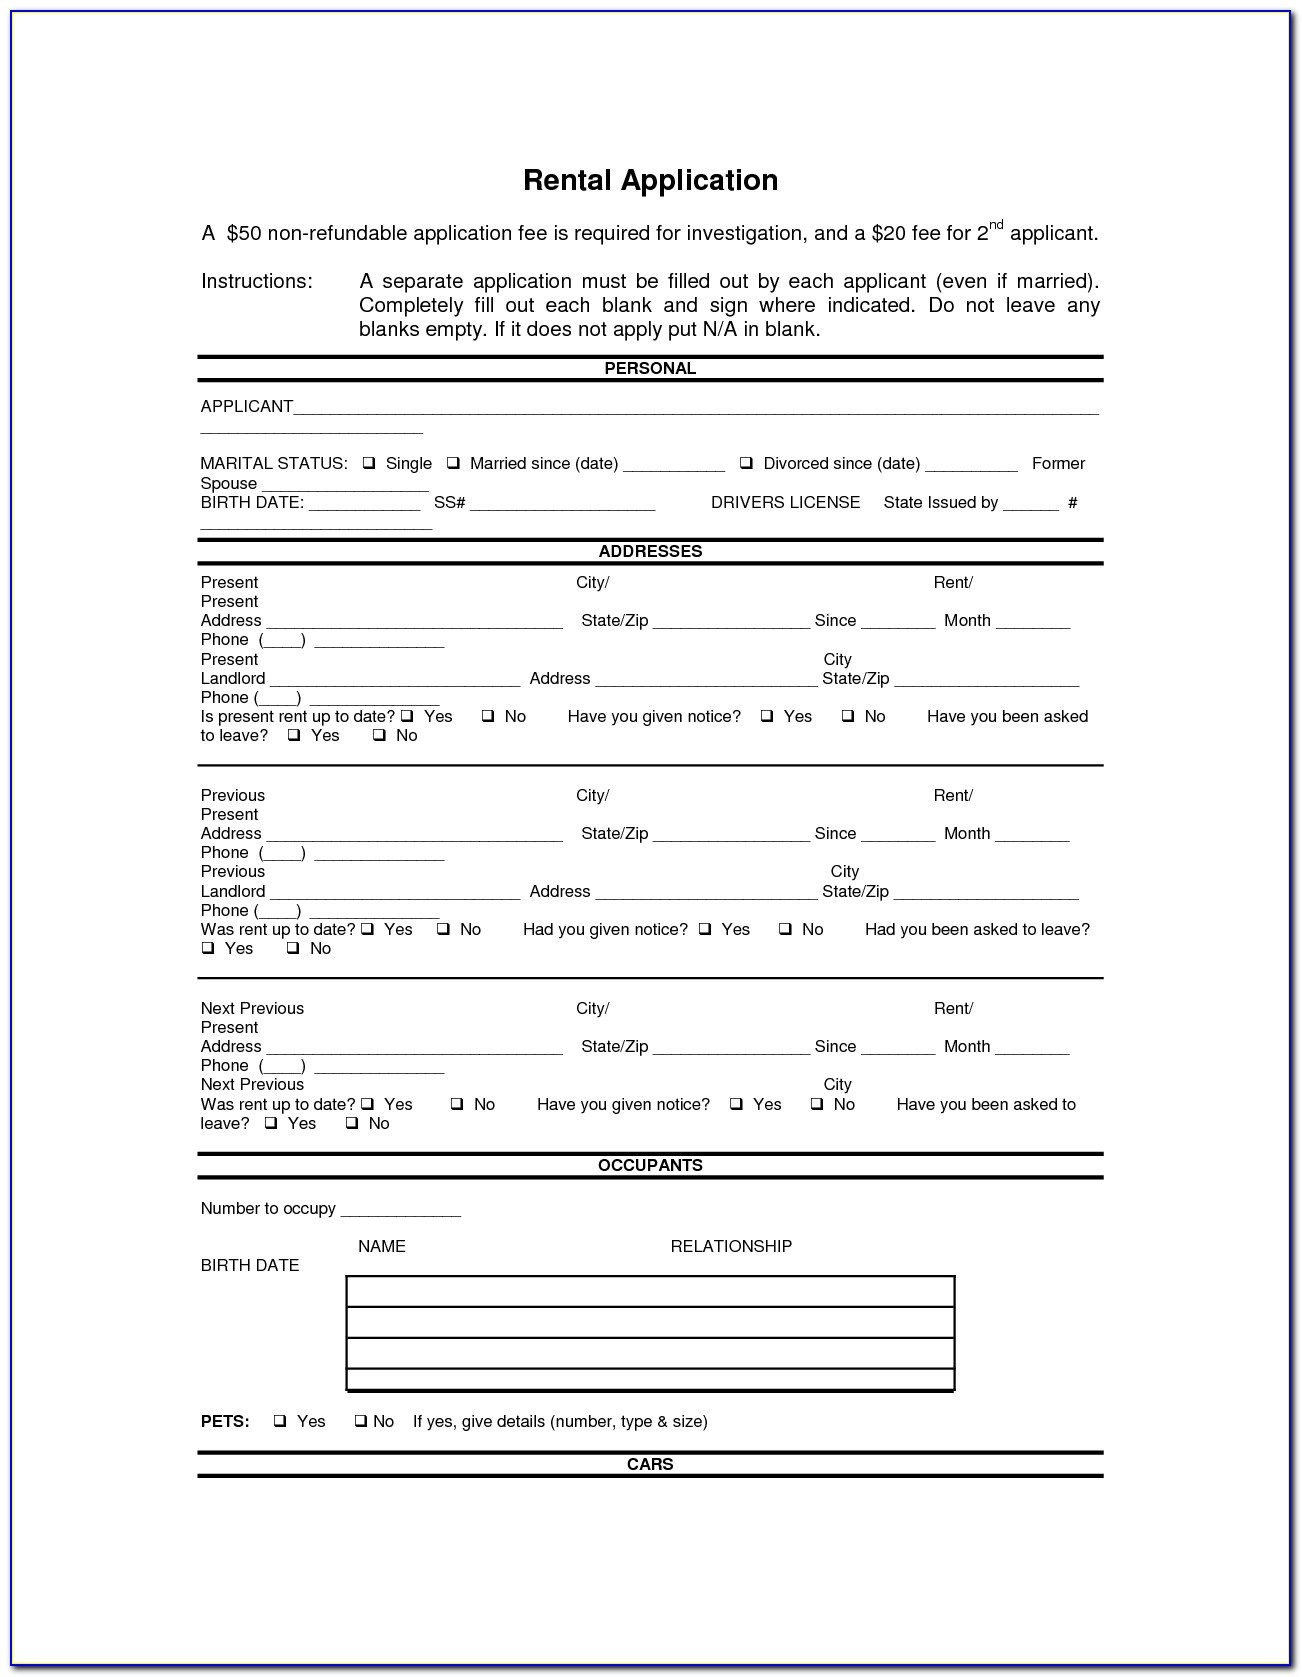 Doc.#592799: Printable Rental Agreement Forms – Free Rental Forms - Free Printable Rental Application Form